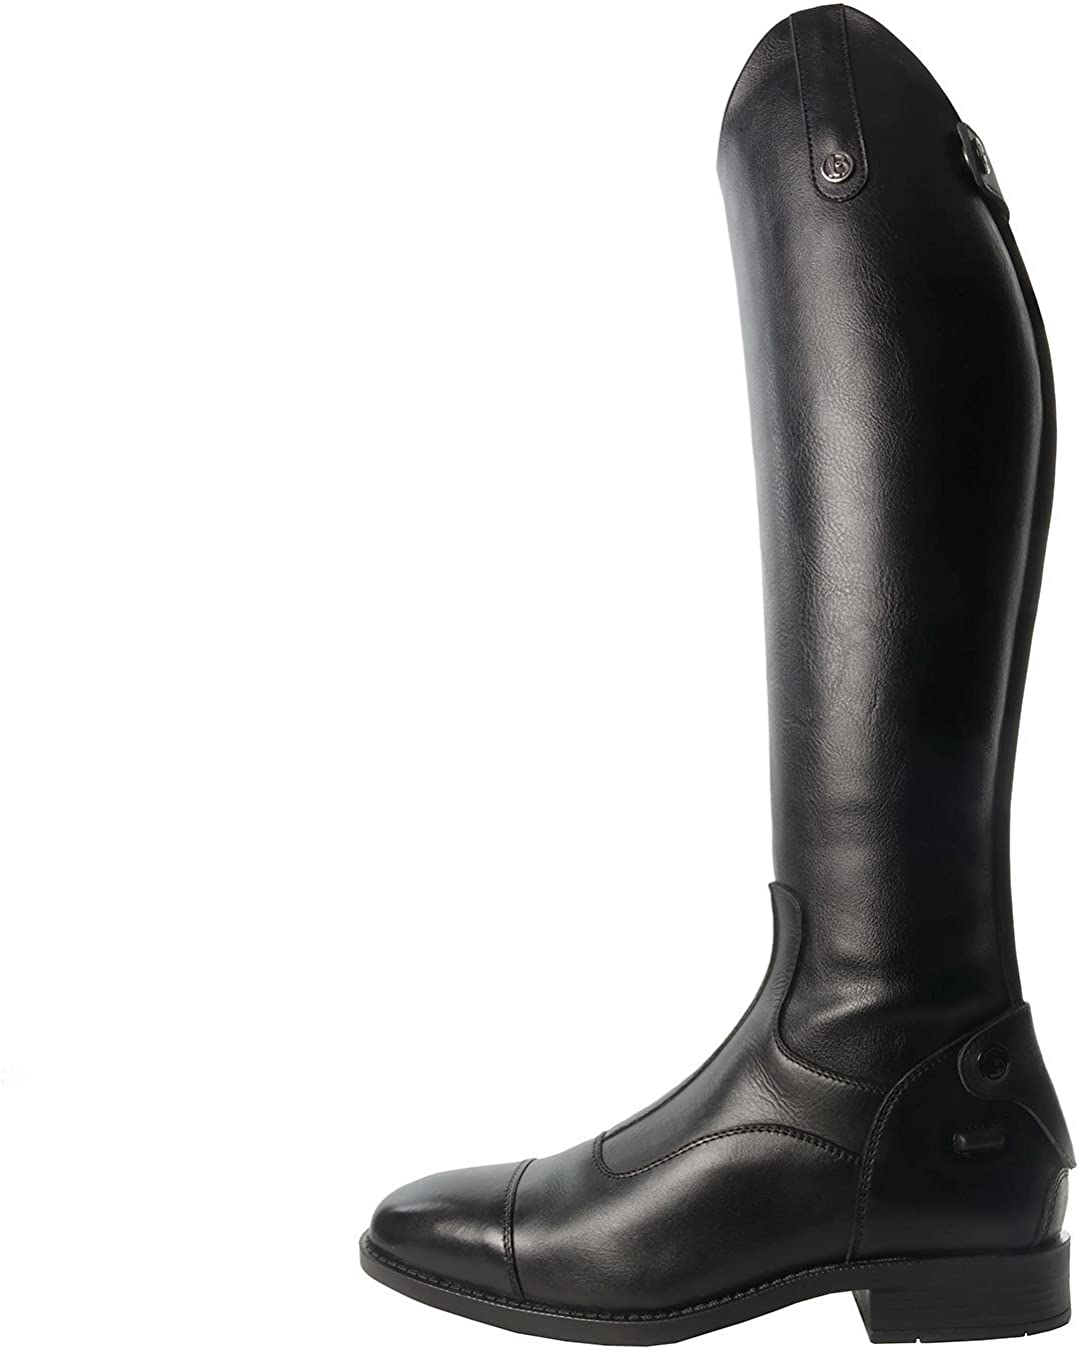 Brogini Casperia V2 Long Riding Boots